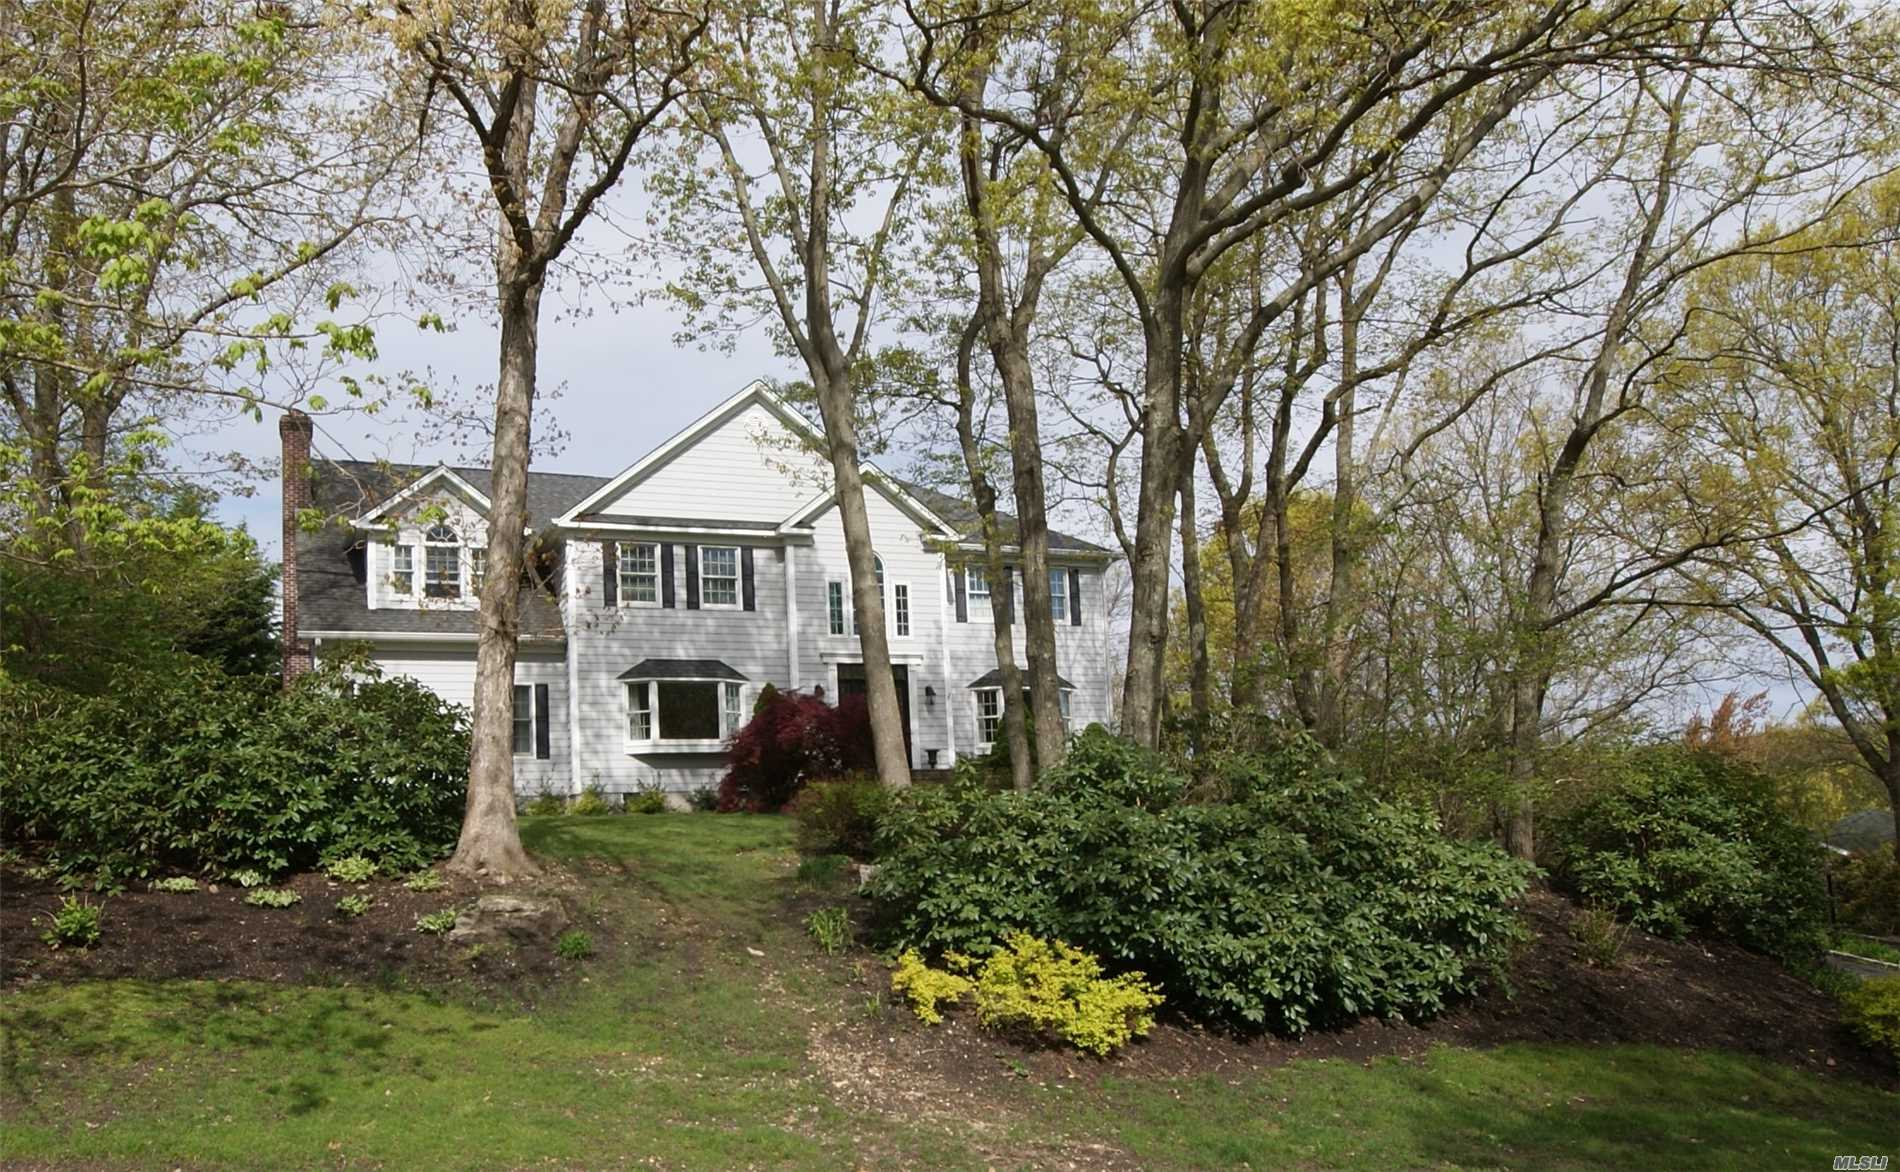 Beautiful Colonial Located In Harbor Hills. Dramatic 2 Story Foyer Featuring 9' Ceilings,  Living Room /Fpl, Formal Dining Room, Chefs Kitchen/Granite/Cherry Cabs/Stain Steel Appl/Butlers Pantry, Separate Office, Master Bedroom With Private En suite Bath With 4 Additional Bedrooms As Well As 2 Full Bathrooms. Full Finished Basement Complete With Great Rm/Gym/Playroom! Beautiful Yard With In Ground Salt Water Pool!! Village Taxes $2732.87 & Taxes W Star $13065.50